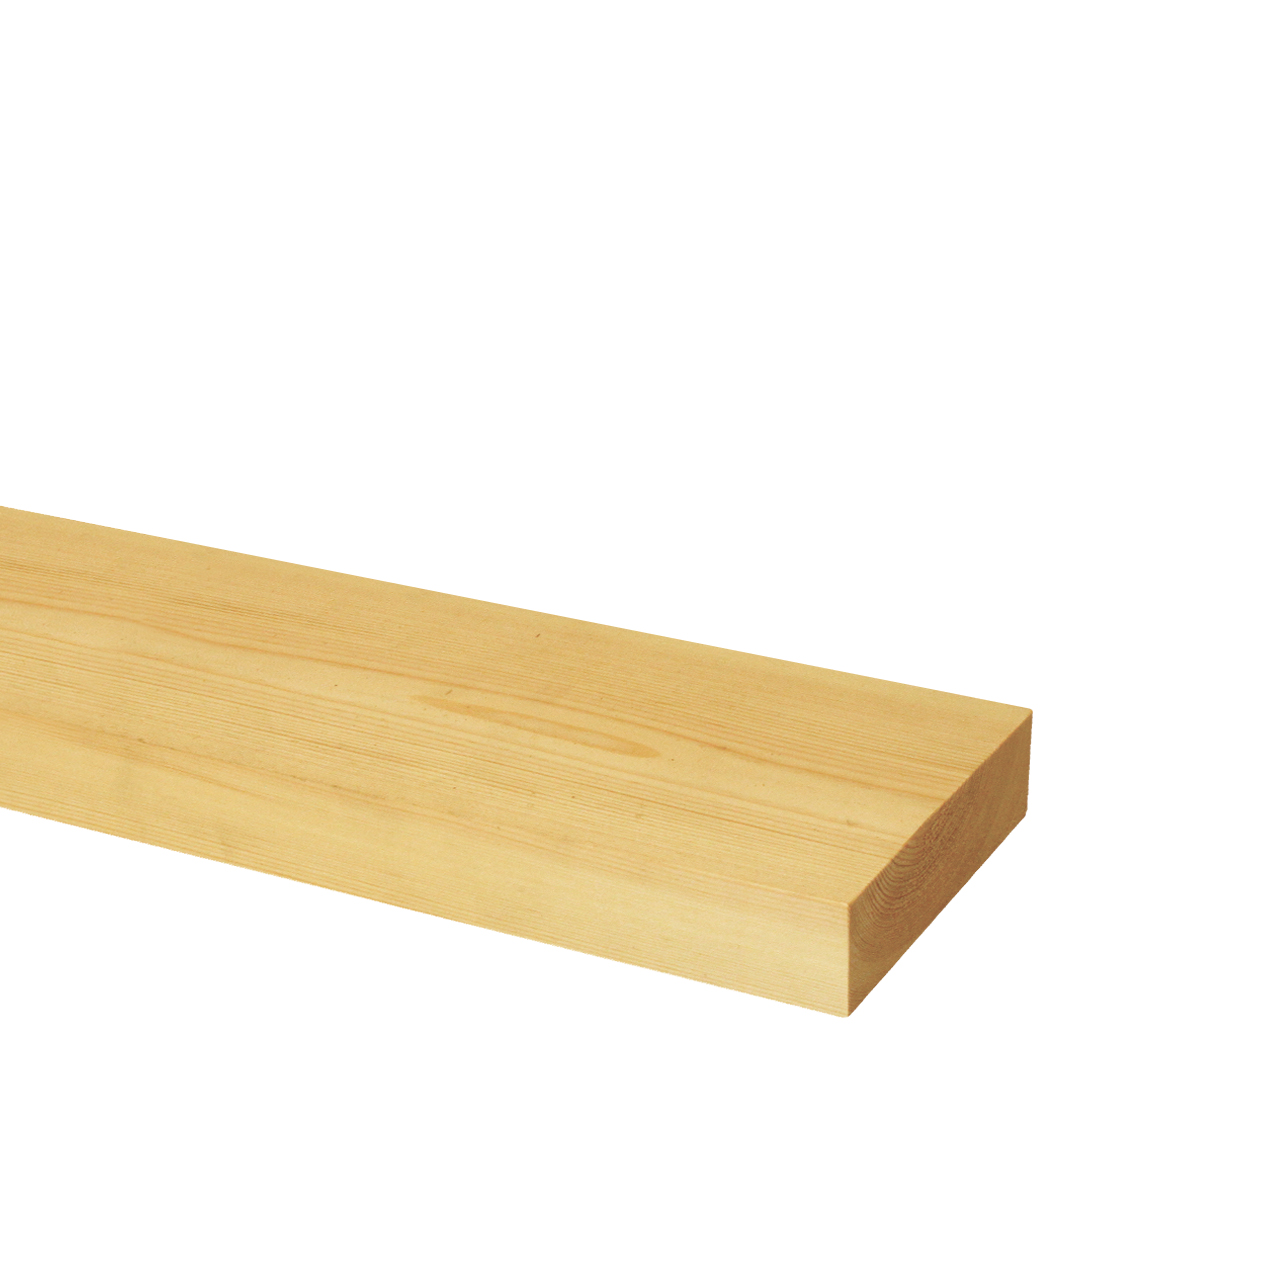 38mm x 100mm PSE Softwood (33mm x 95mm Finished Size) image 0